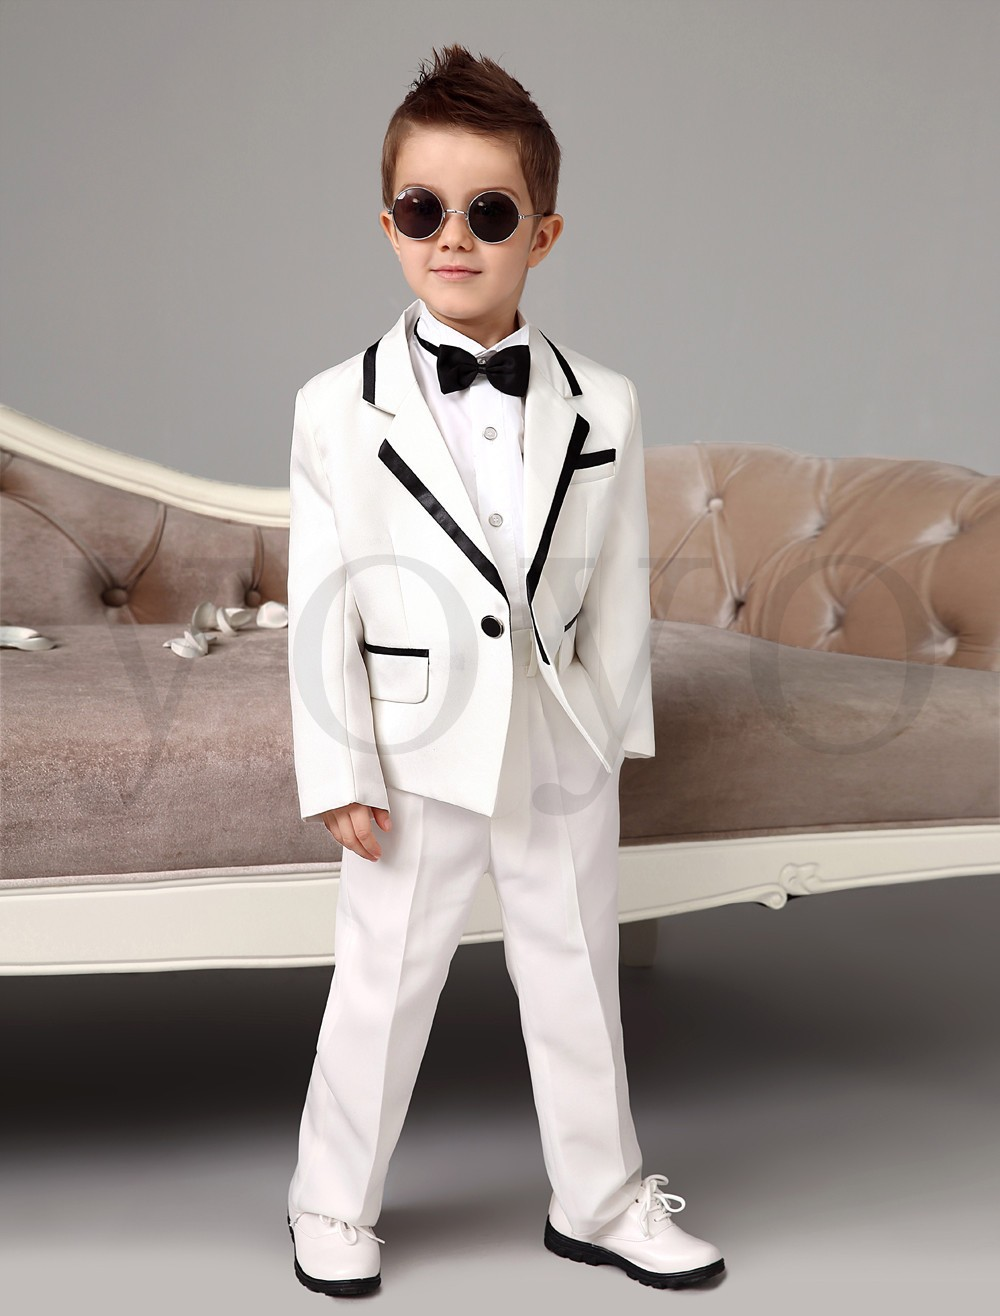 Kids dress clothes boys beauty clothes for Boys dress clothes wedding